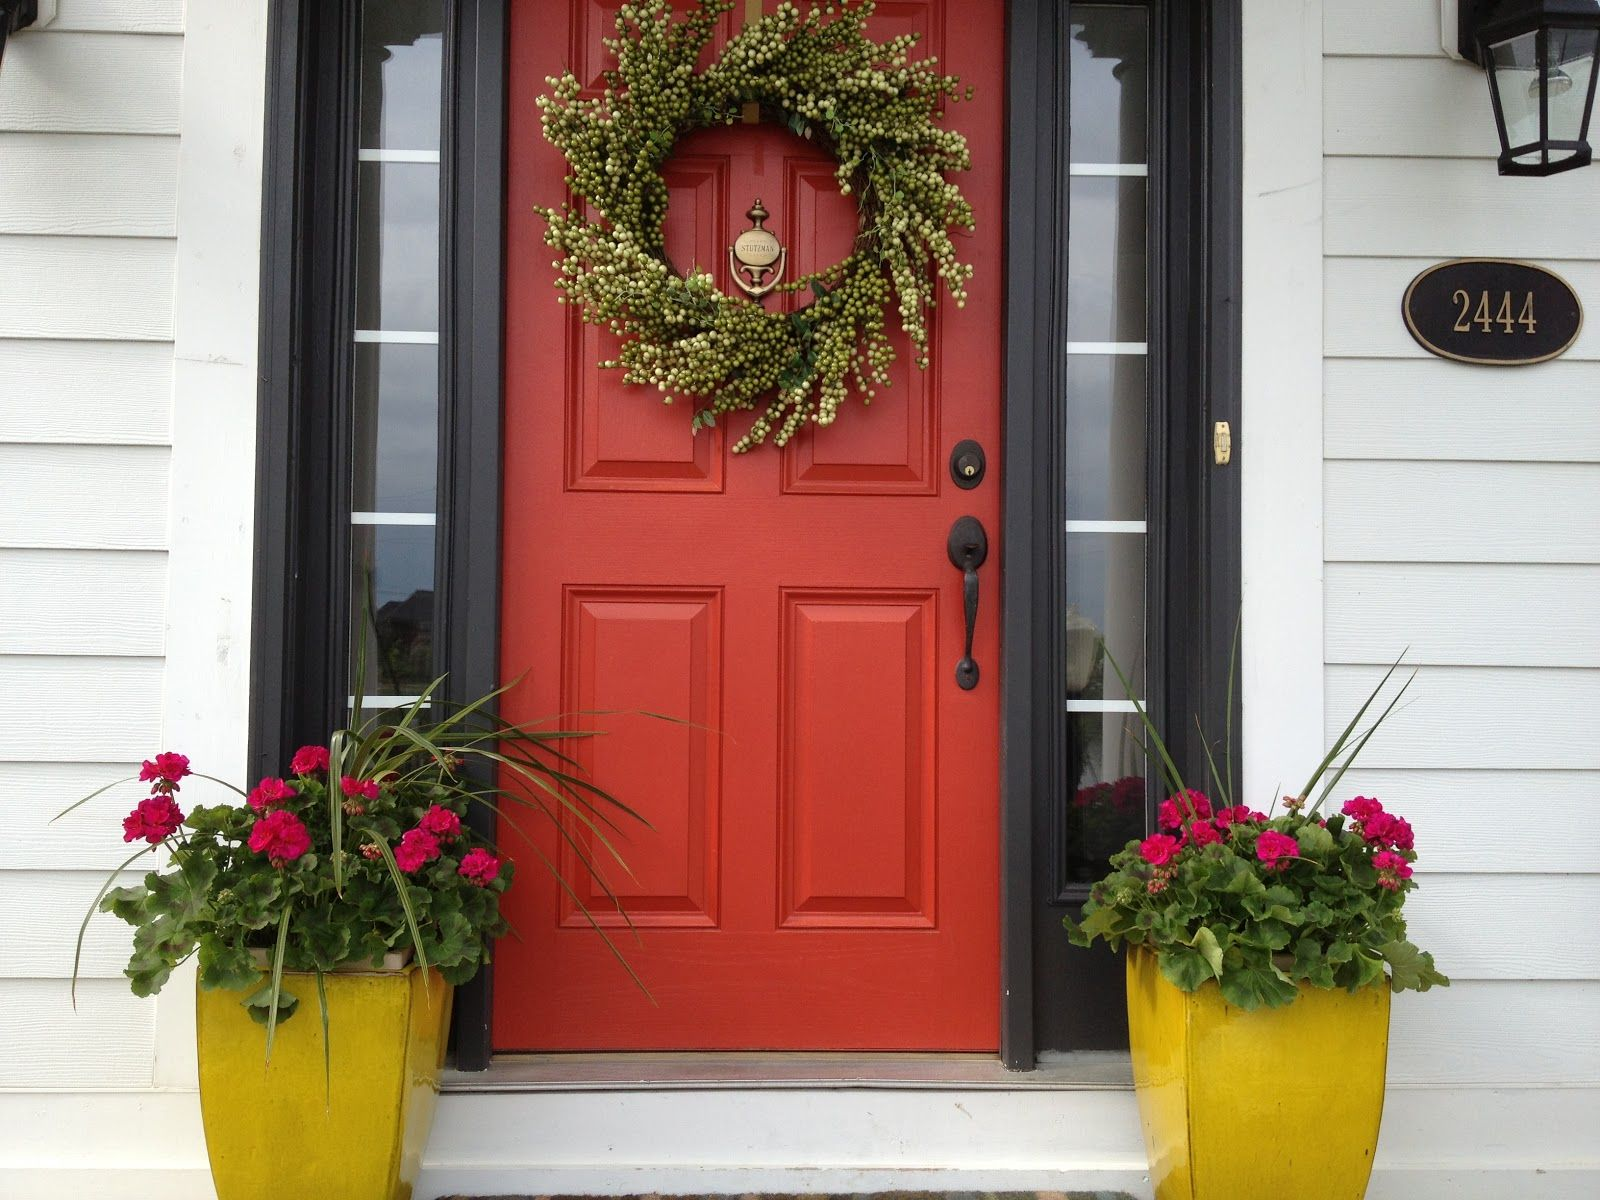 17 Best Images About Black Shutters On Pinterest Red Front Doors ...